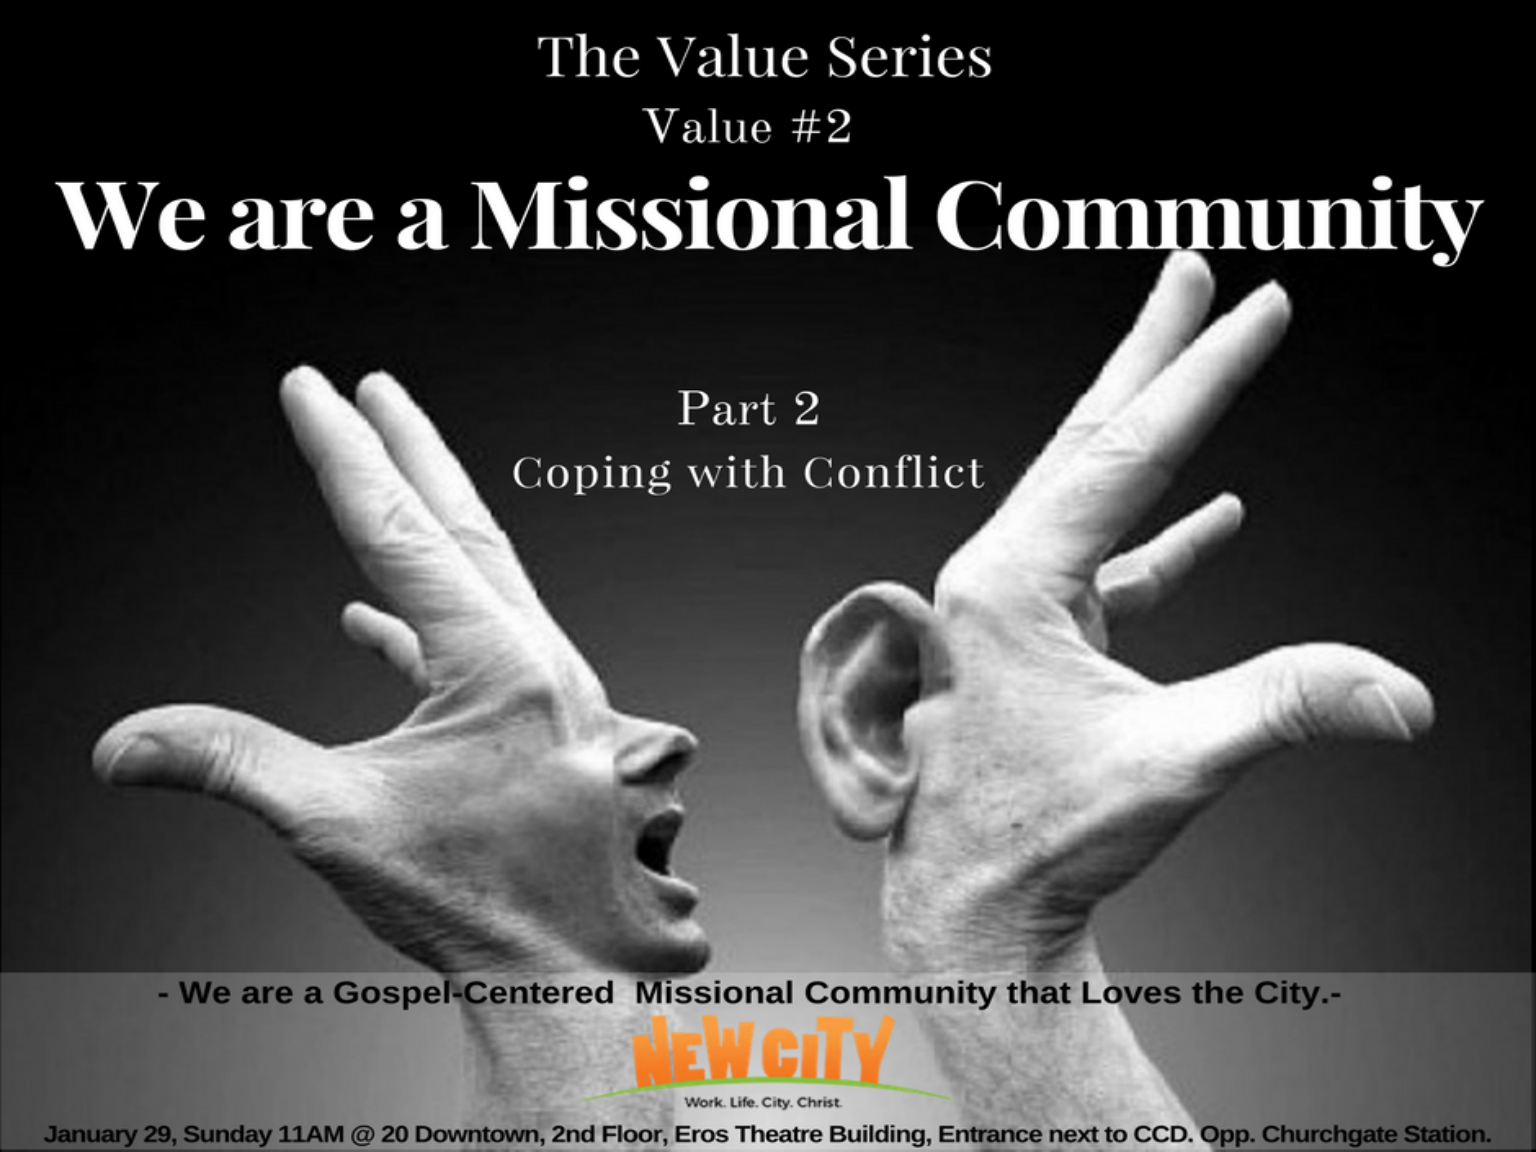 We are Missional Community (Part 2) Image